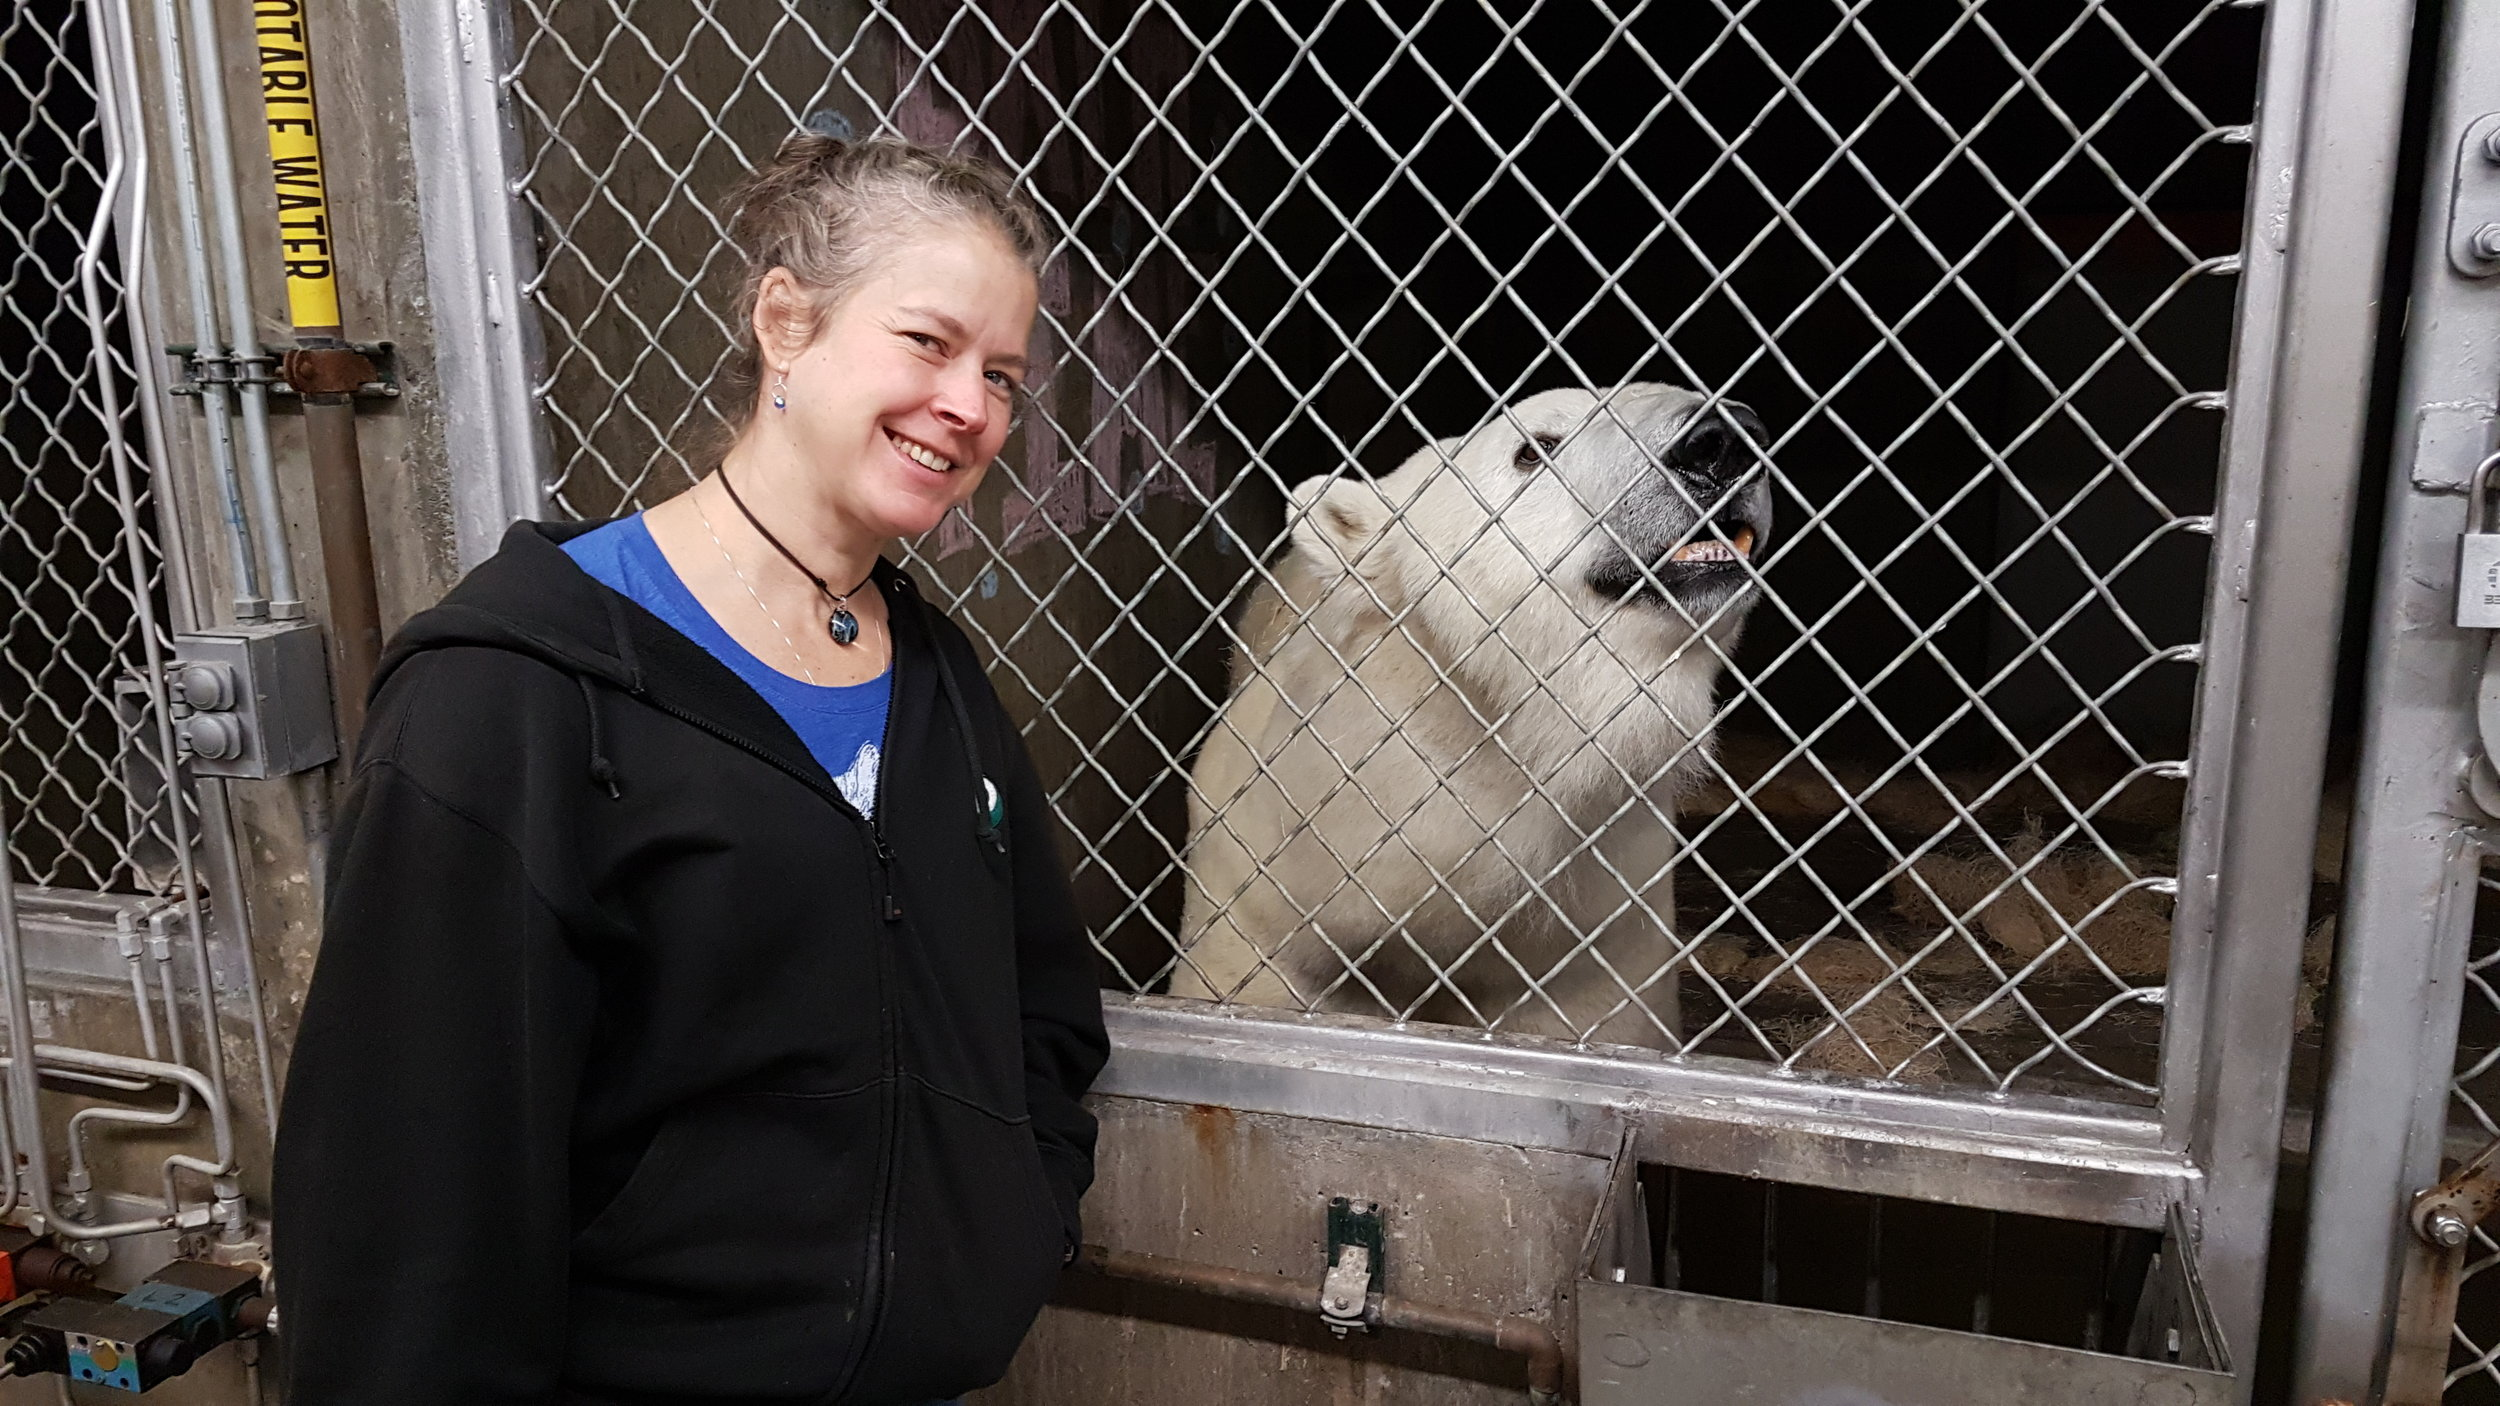 Beth and Cranbeary meeting for the first time. We can't wait to welcome Cranbeary to her new home!